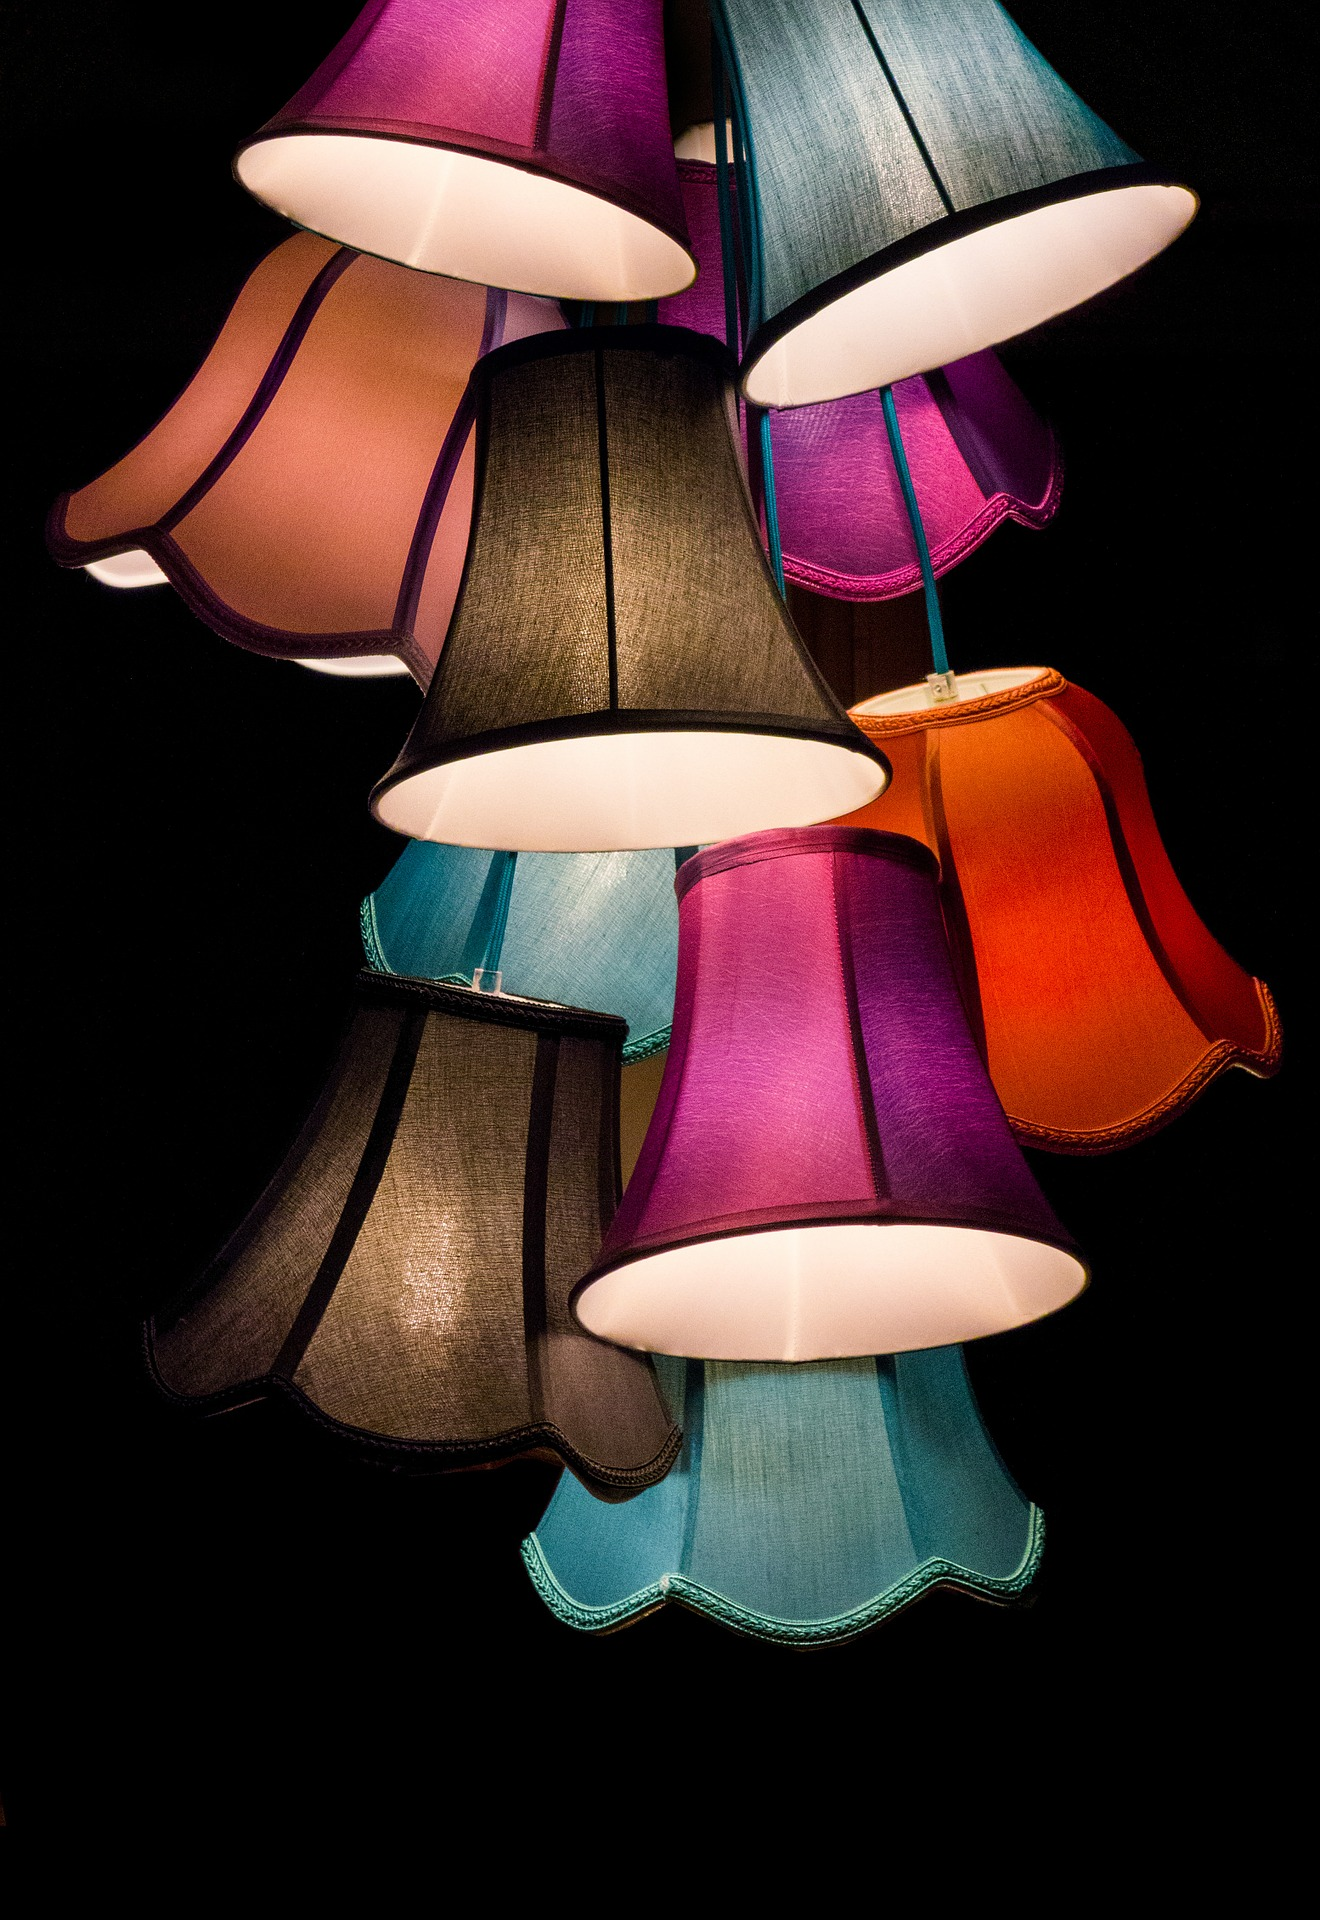 lamps-453783_1920